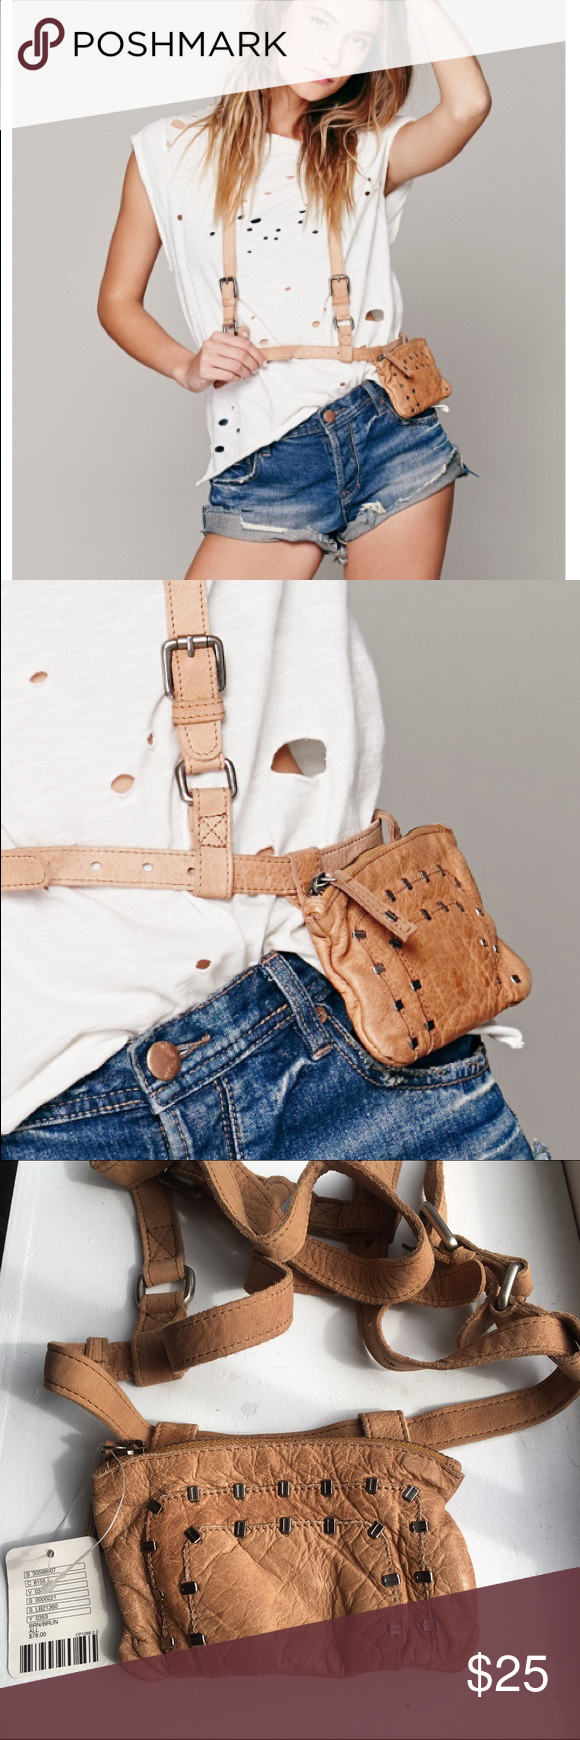 COACHELLA APPROVED! Free People Harness Belt The perfect touch for your festival ensemble. Whether you're headed to Coachella or just want to hands free (yet stylish). This leather body harness belt has a handy pocket (with credit card slots) that is detachable for when you just need the harness to complete your look or want to use the pocket as a wallet. Loops through both arms. Adjustable straps. Gold hardware accents. Zipper closure with leather pull. Free People Bags Mini Bags